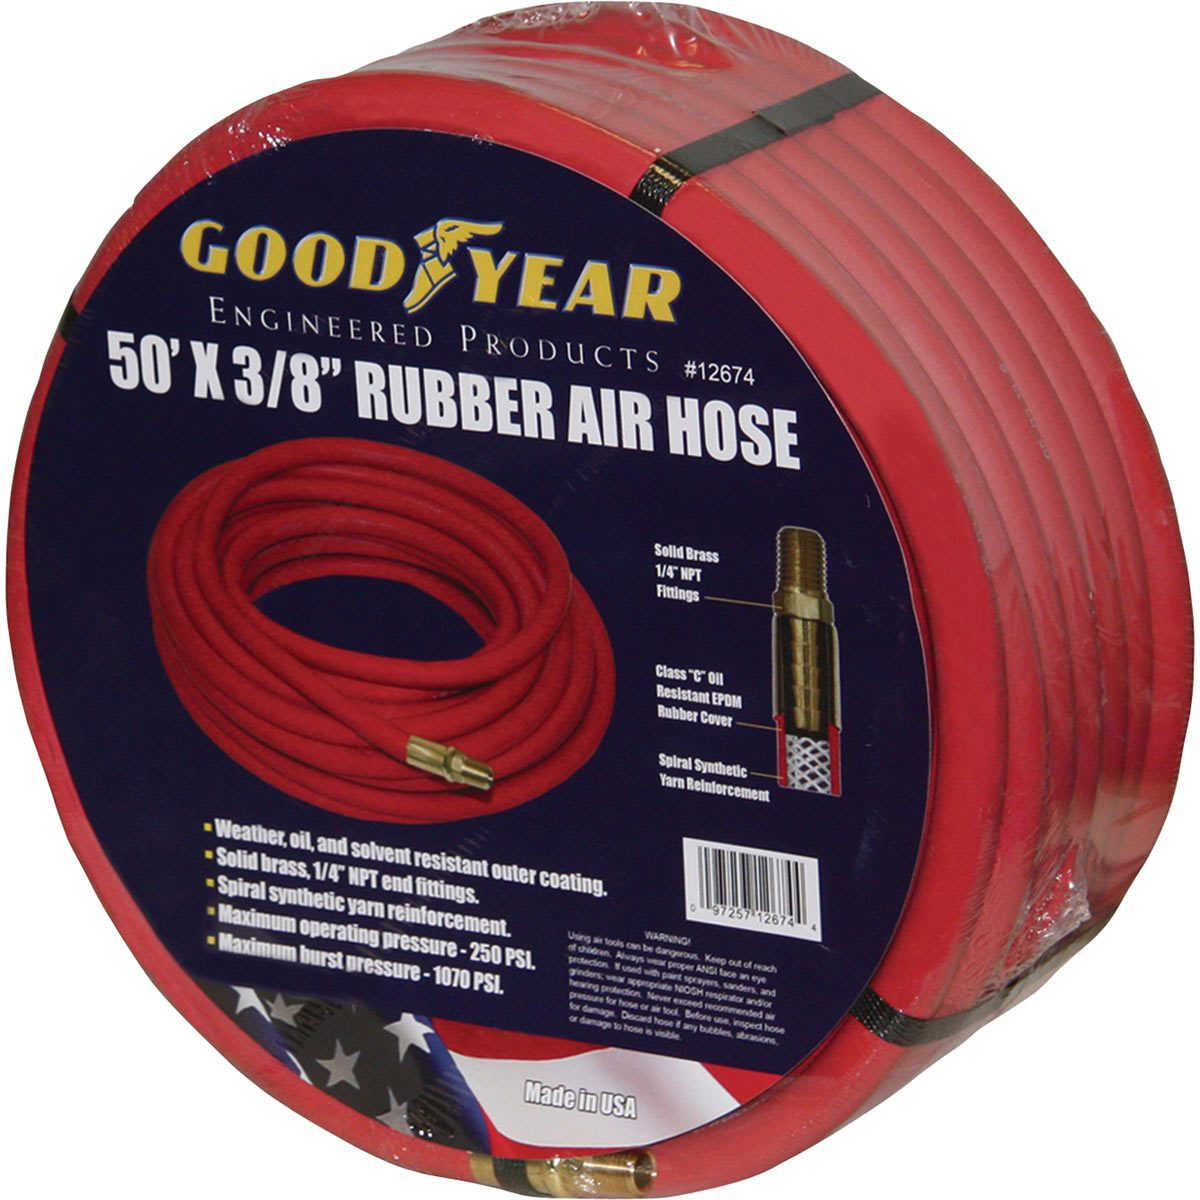 Goodyear-Rubber-hose